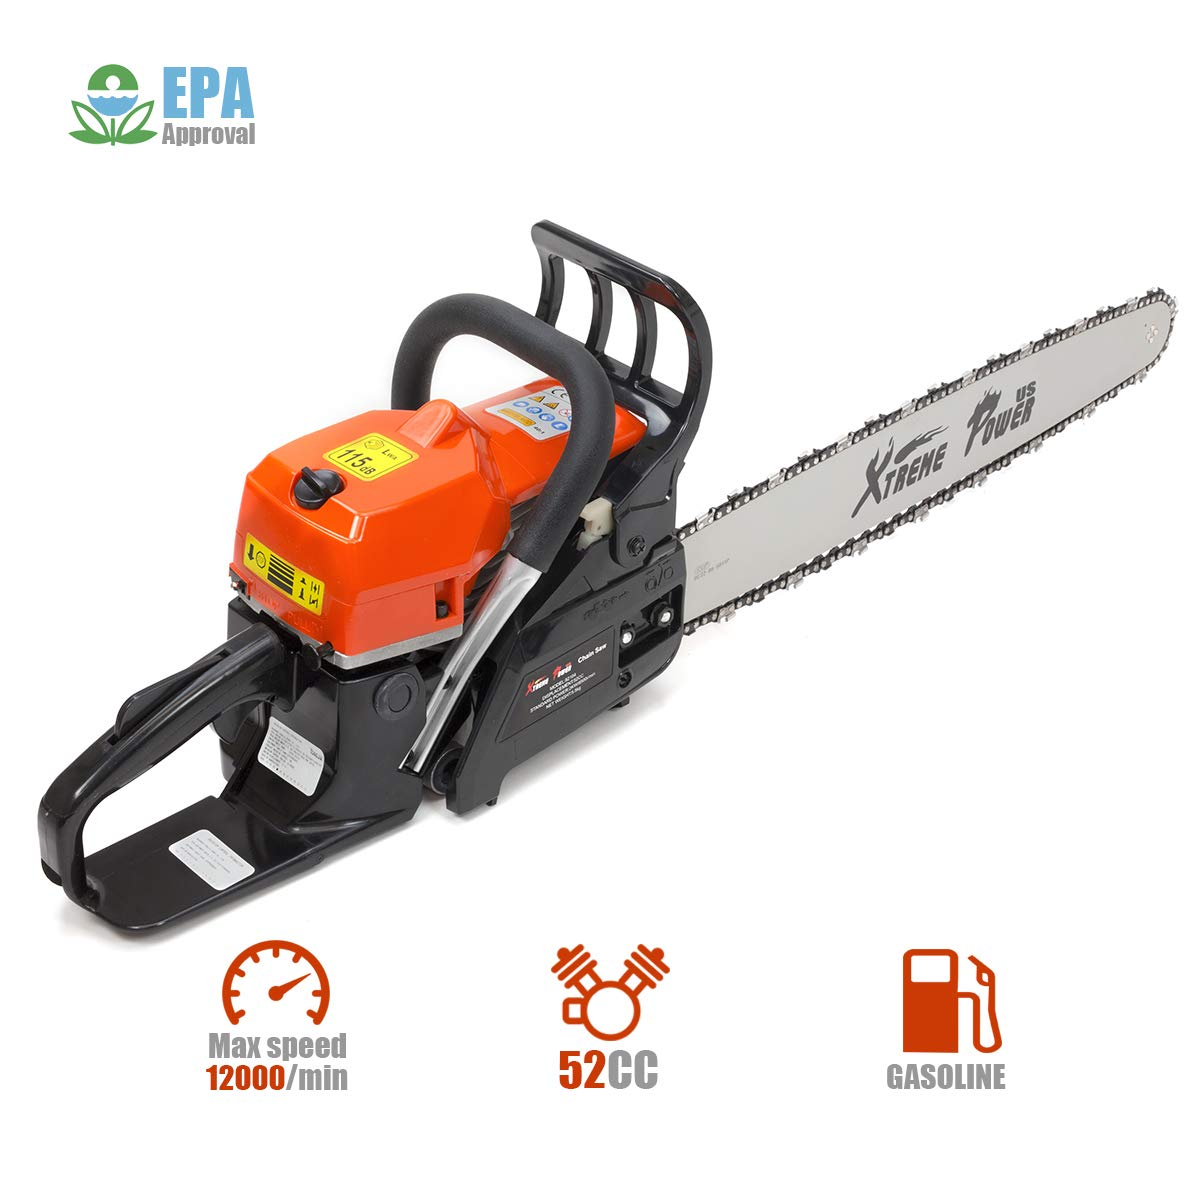 XtremepowerUS 52cc 2 Stroke Chainsaws product image 3